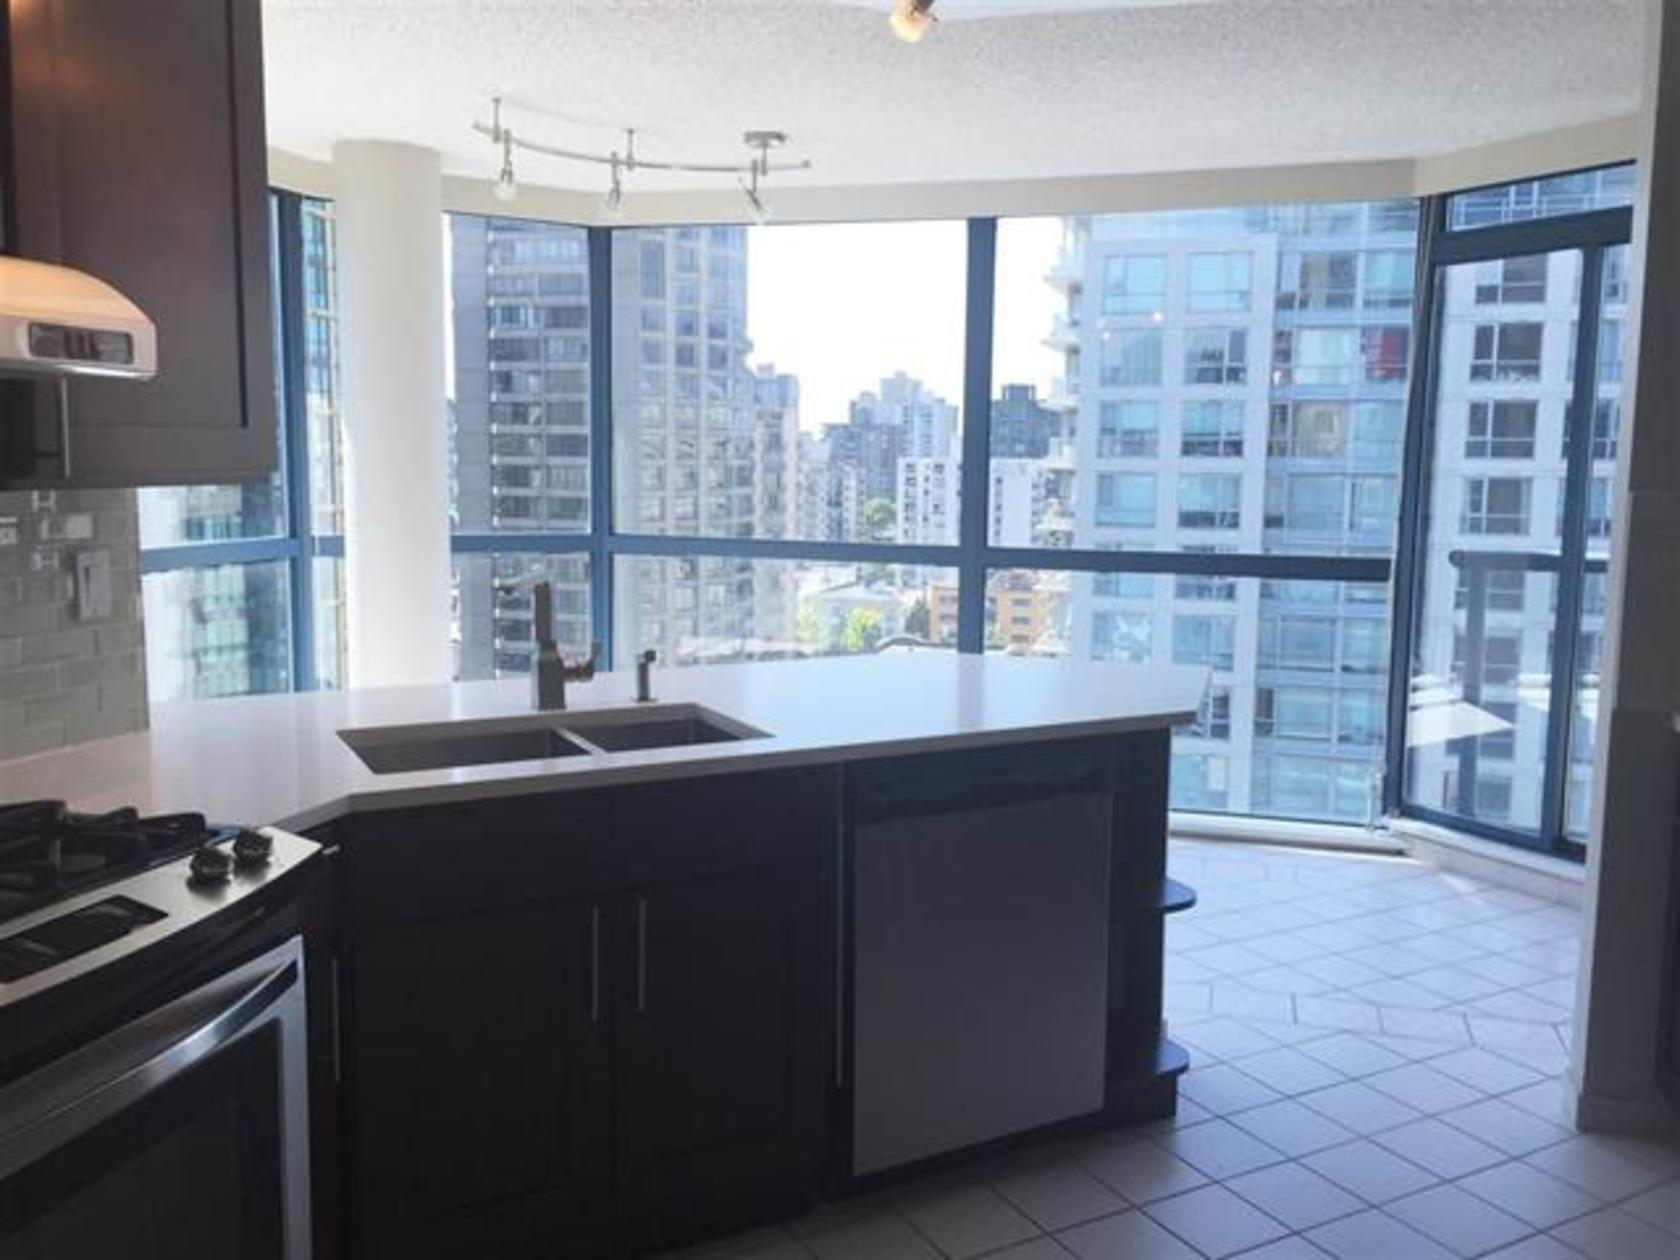 262209489-6 at 1704 - 1415 W Georgia Street, Coal Harbour, Vancouver West